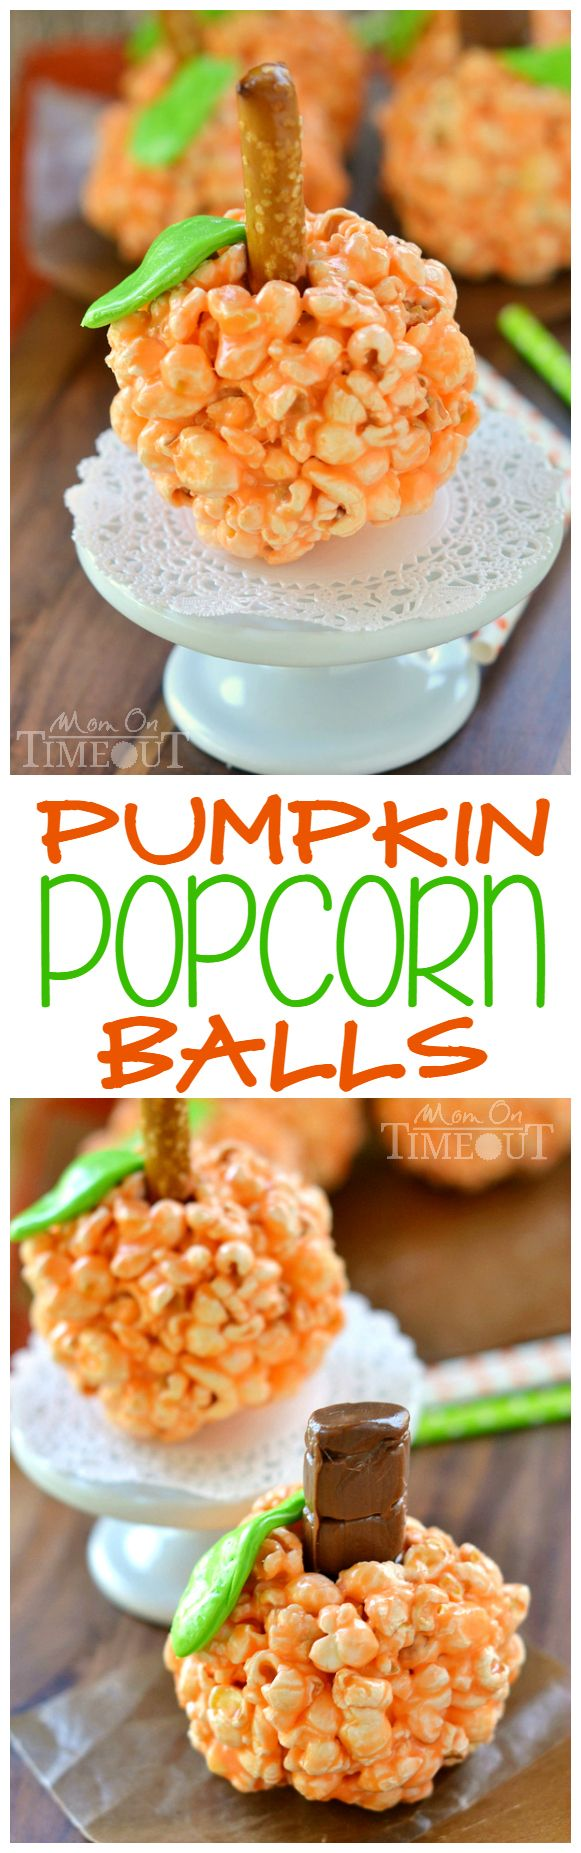 Fun and oh-so delicious, these Pumpkin Popcorn Balls are made with marshmallows for the ultimate soft and chewy treat! Perfect for Halloween and Thanksgiving!